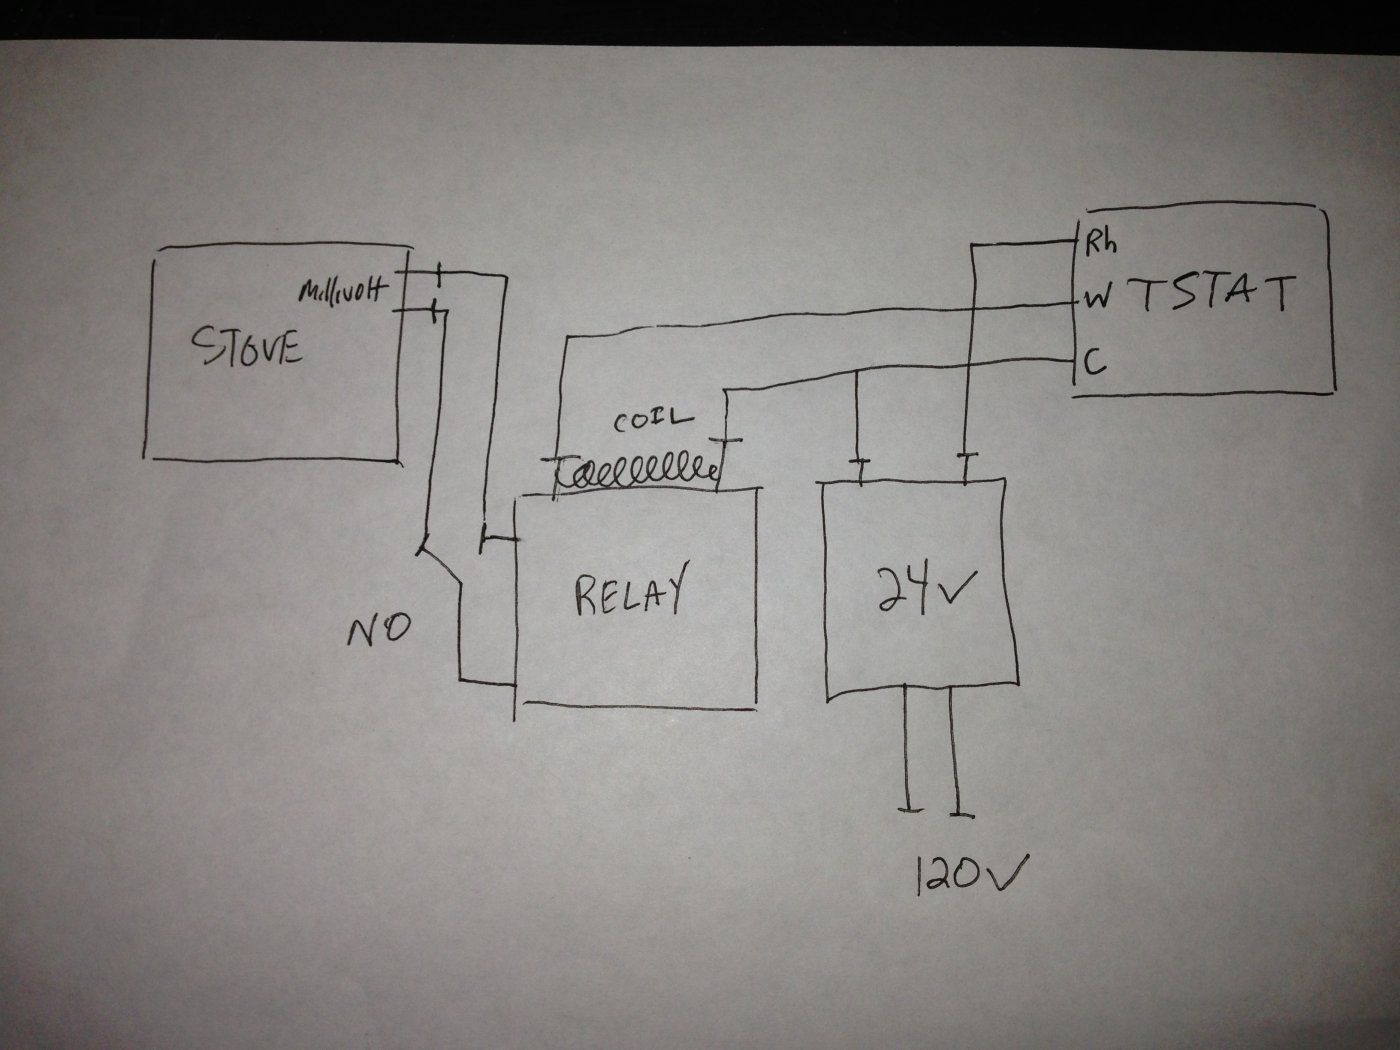 thermal zone 24 volt wiring diagram